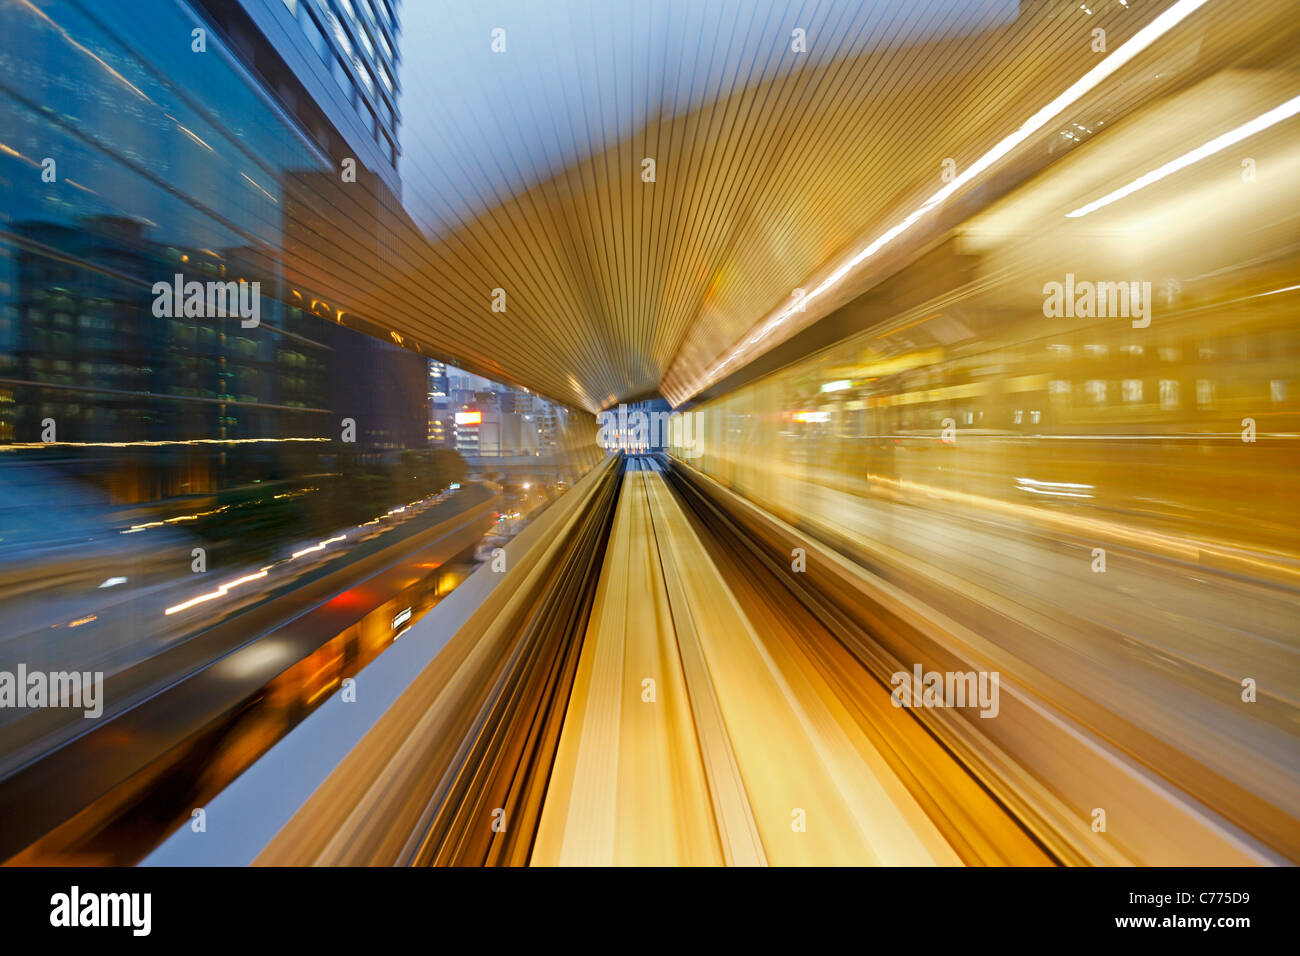 Asia, Japan, Honshu, Tokyo, POV blurred motion of Tokyo buildings from a moving train - Stock Image